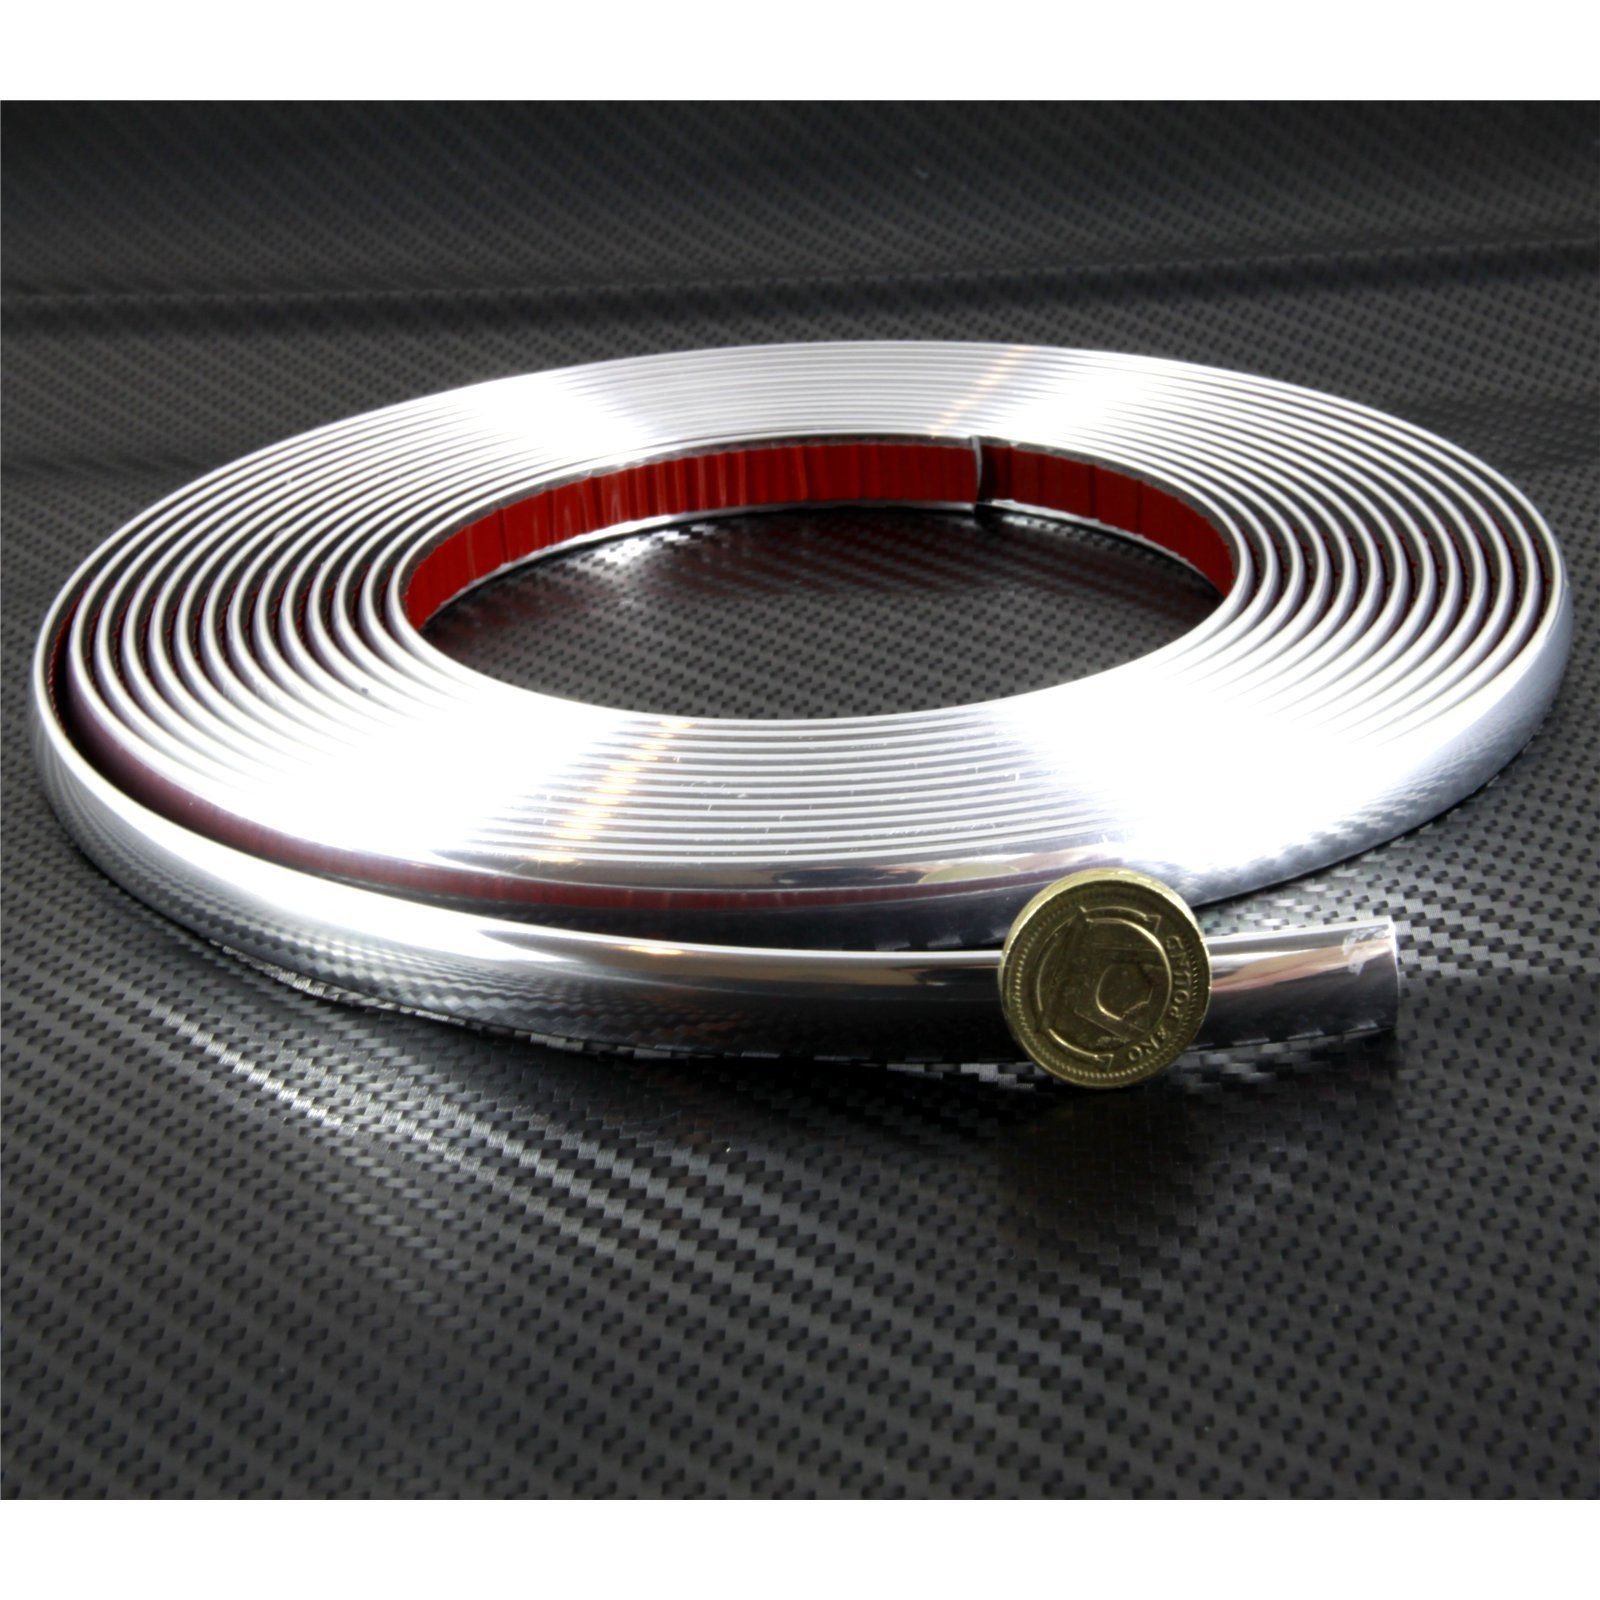 12mmx2m chrome styling moulding strip trim for for Ebay turbo lister templates